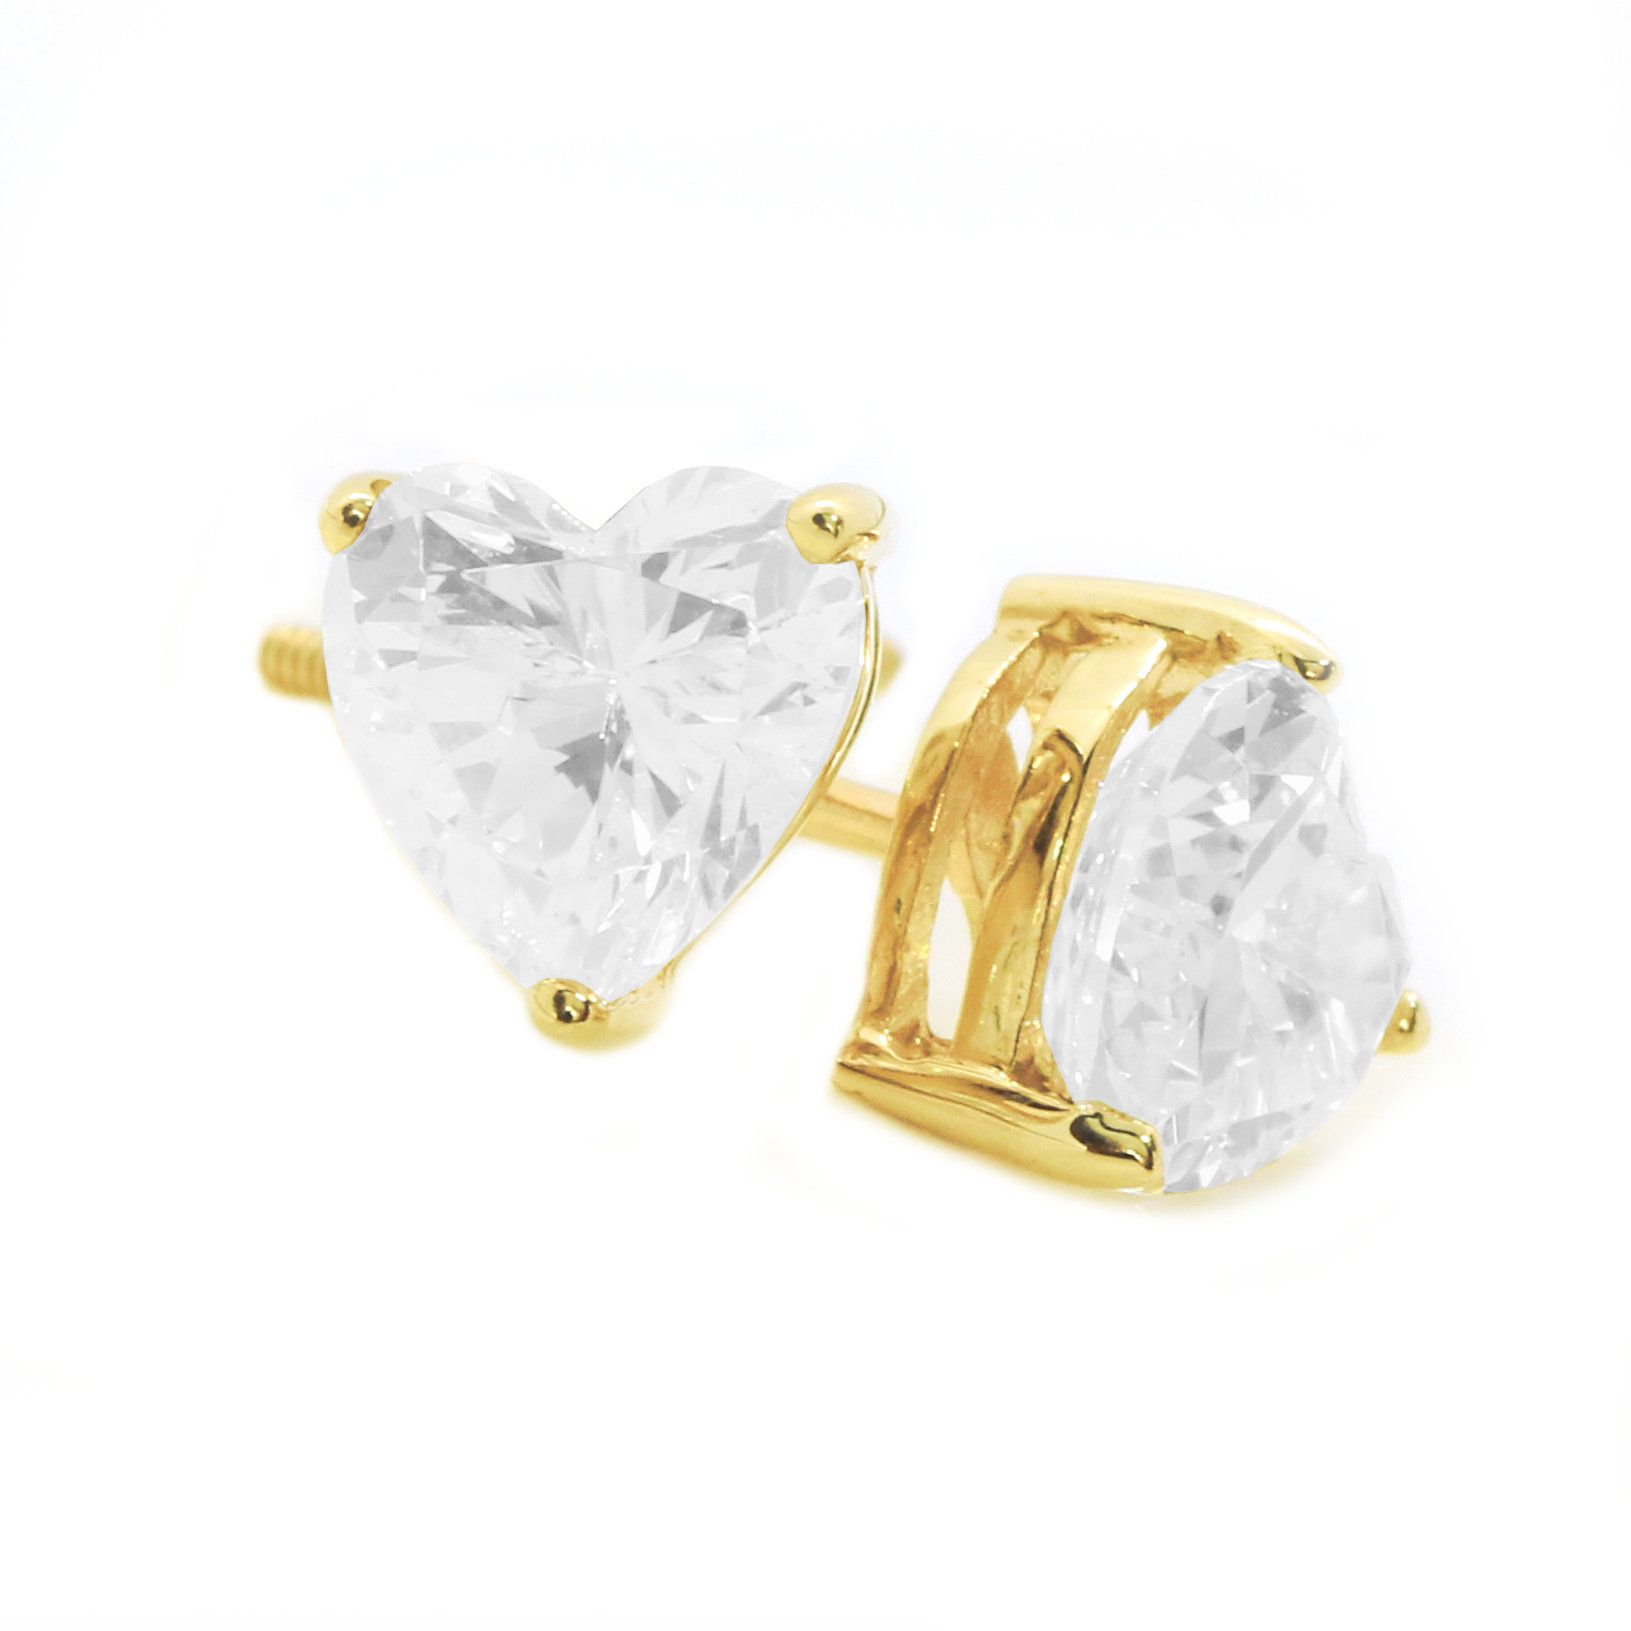 3d75fd4bf 2 Ct Heart Cut Stud Diamond Earrings in Solid 14k 18k Yellow Gold Screw  Back Studs